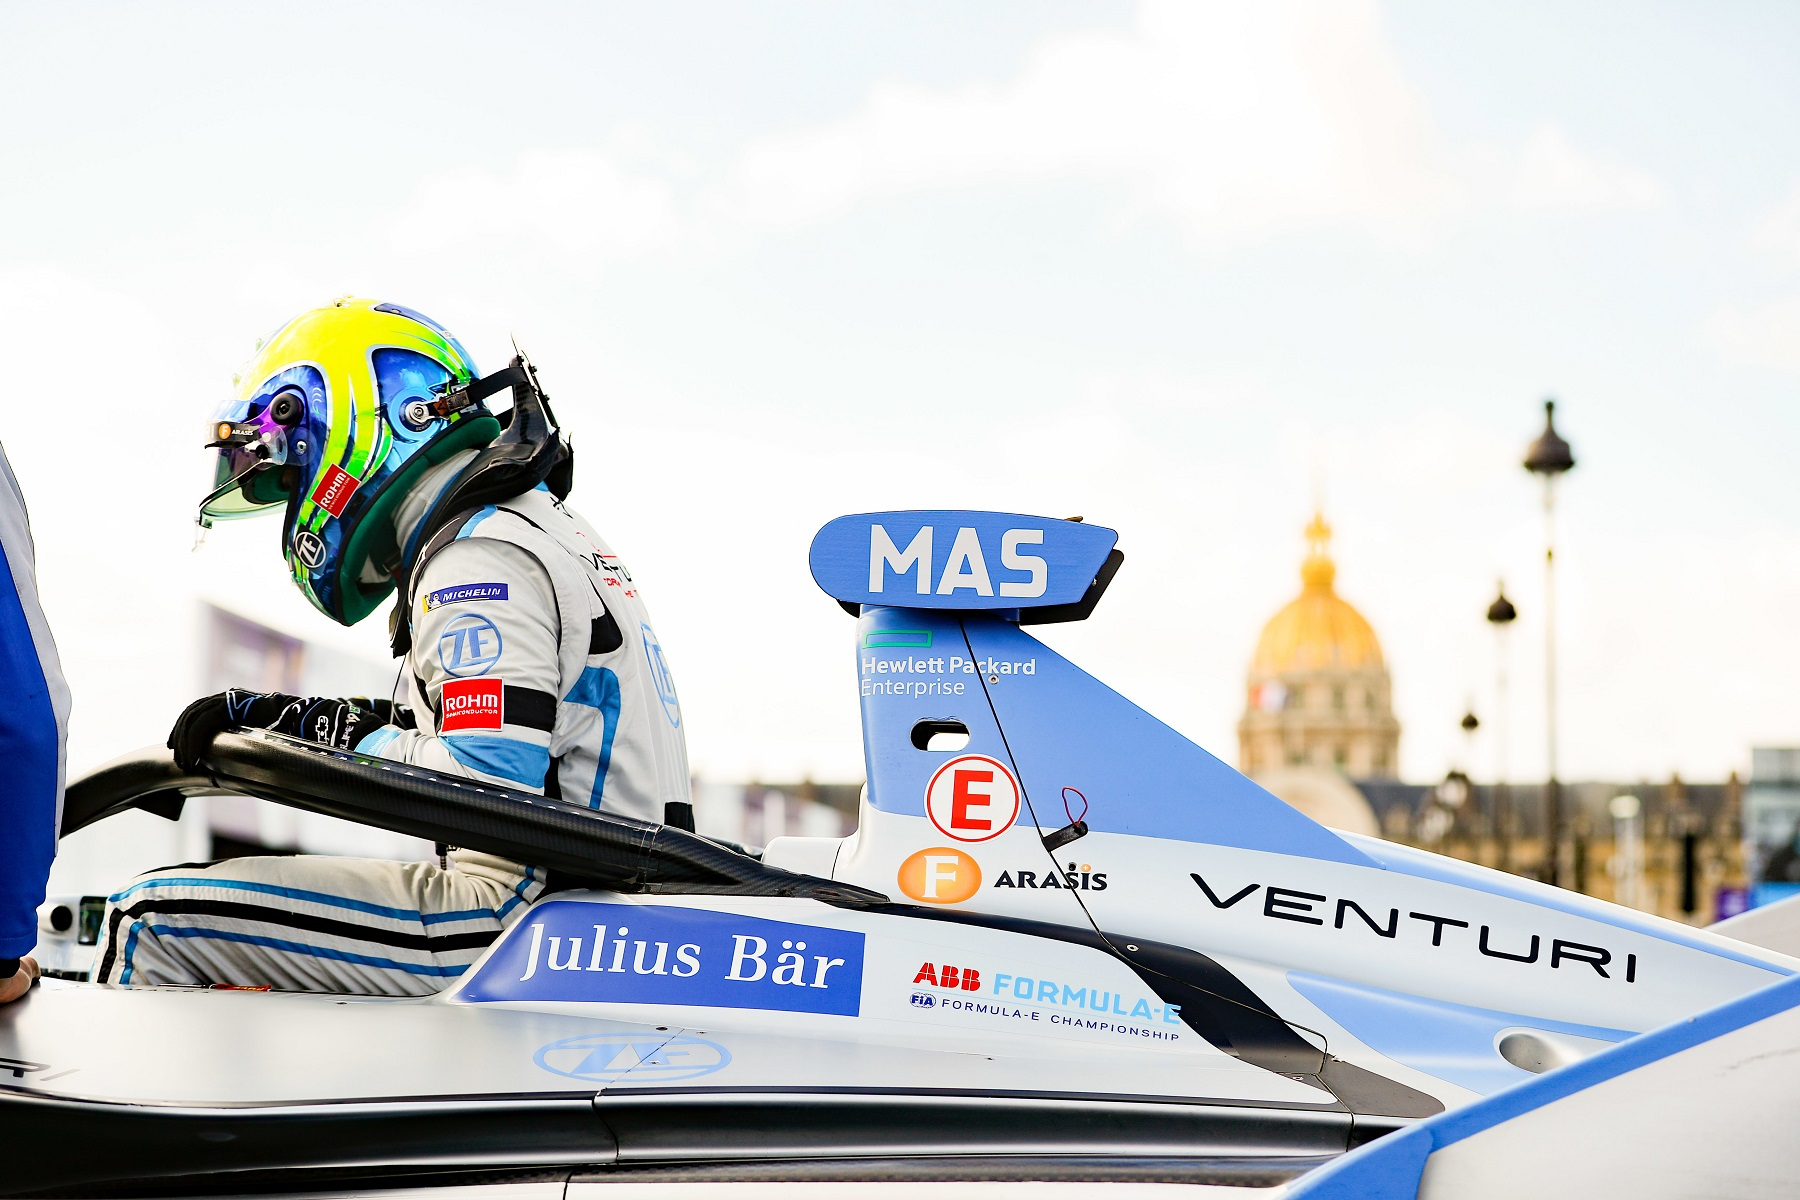 Paris-Top8-Felipe-Massa-getting-out-of-the-car-in-front-of-Hotel-de-Invalides.jpg